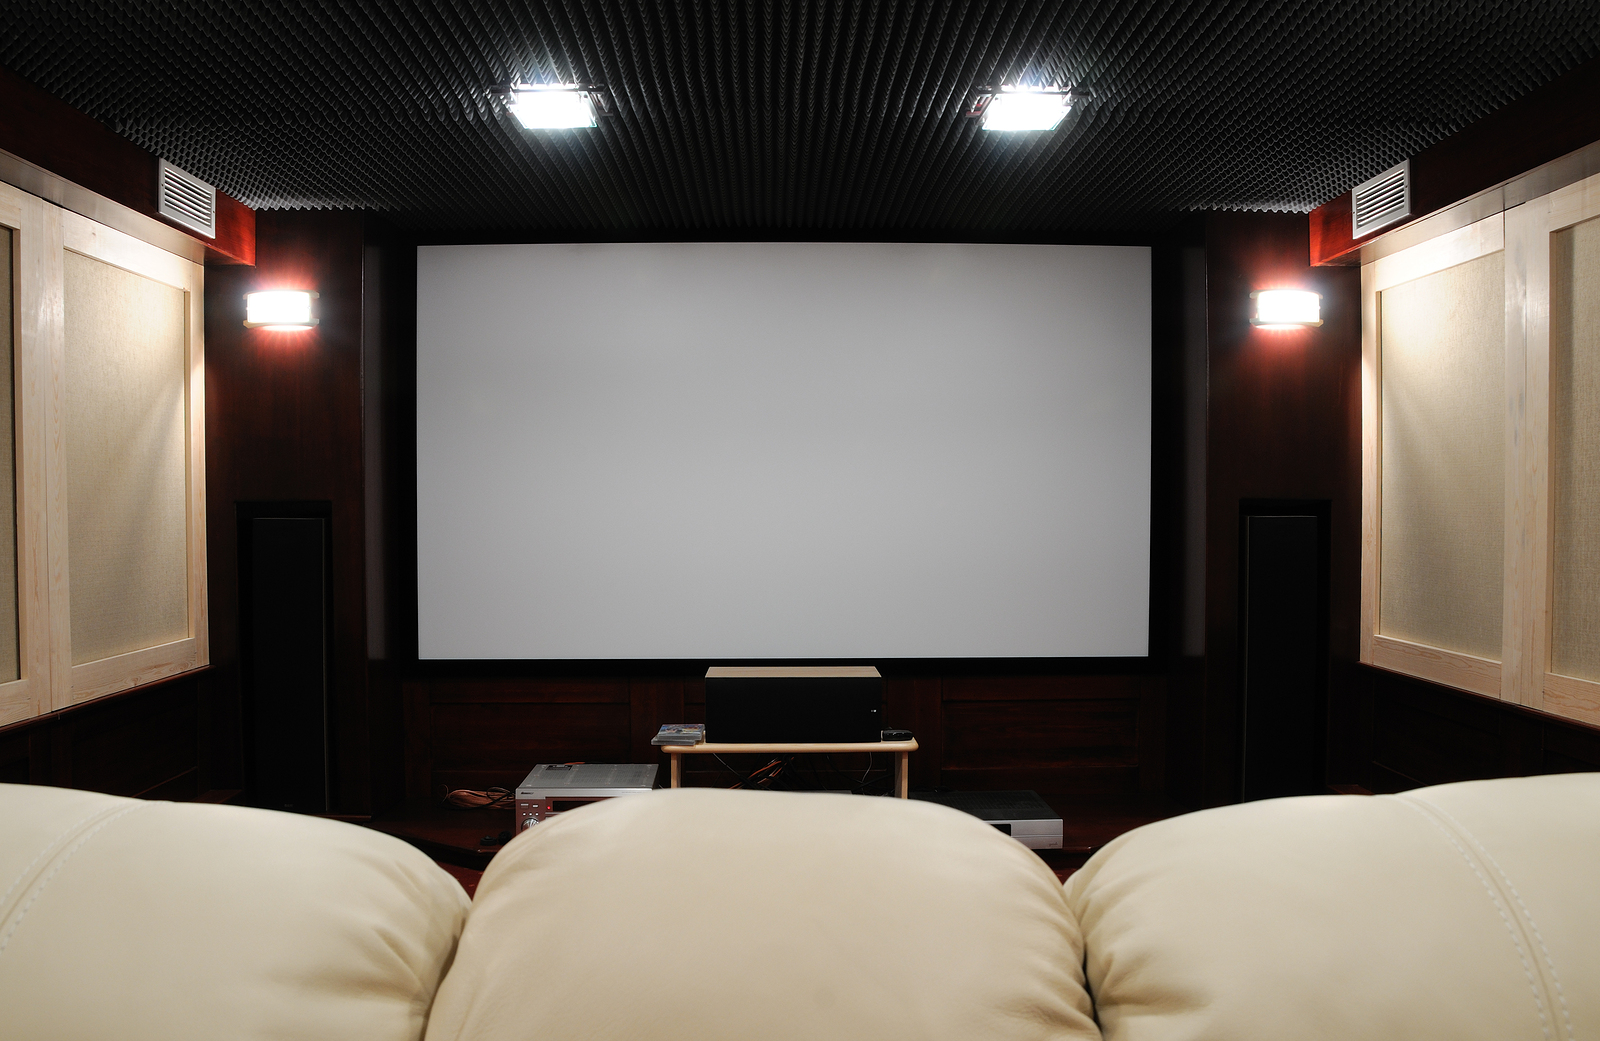 Home Theatre Digital Evolution How To Install Theater System